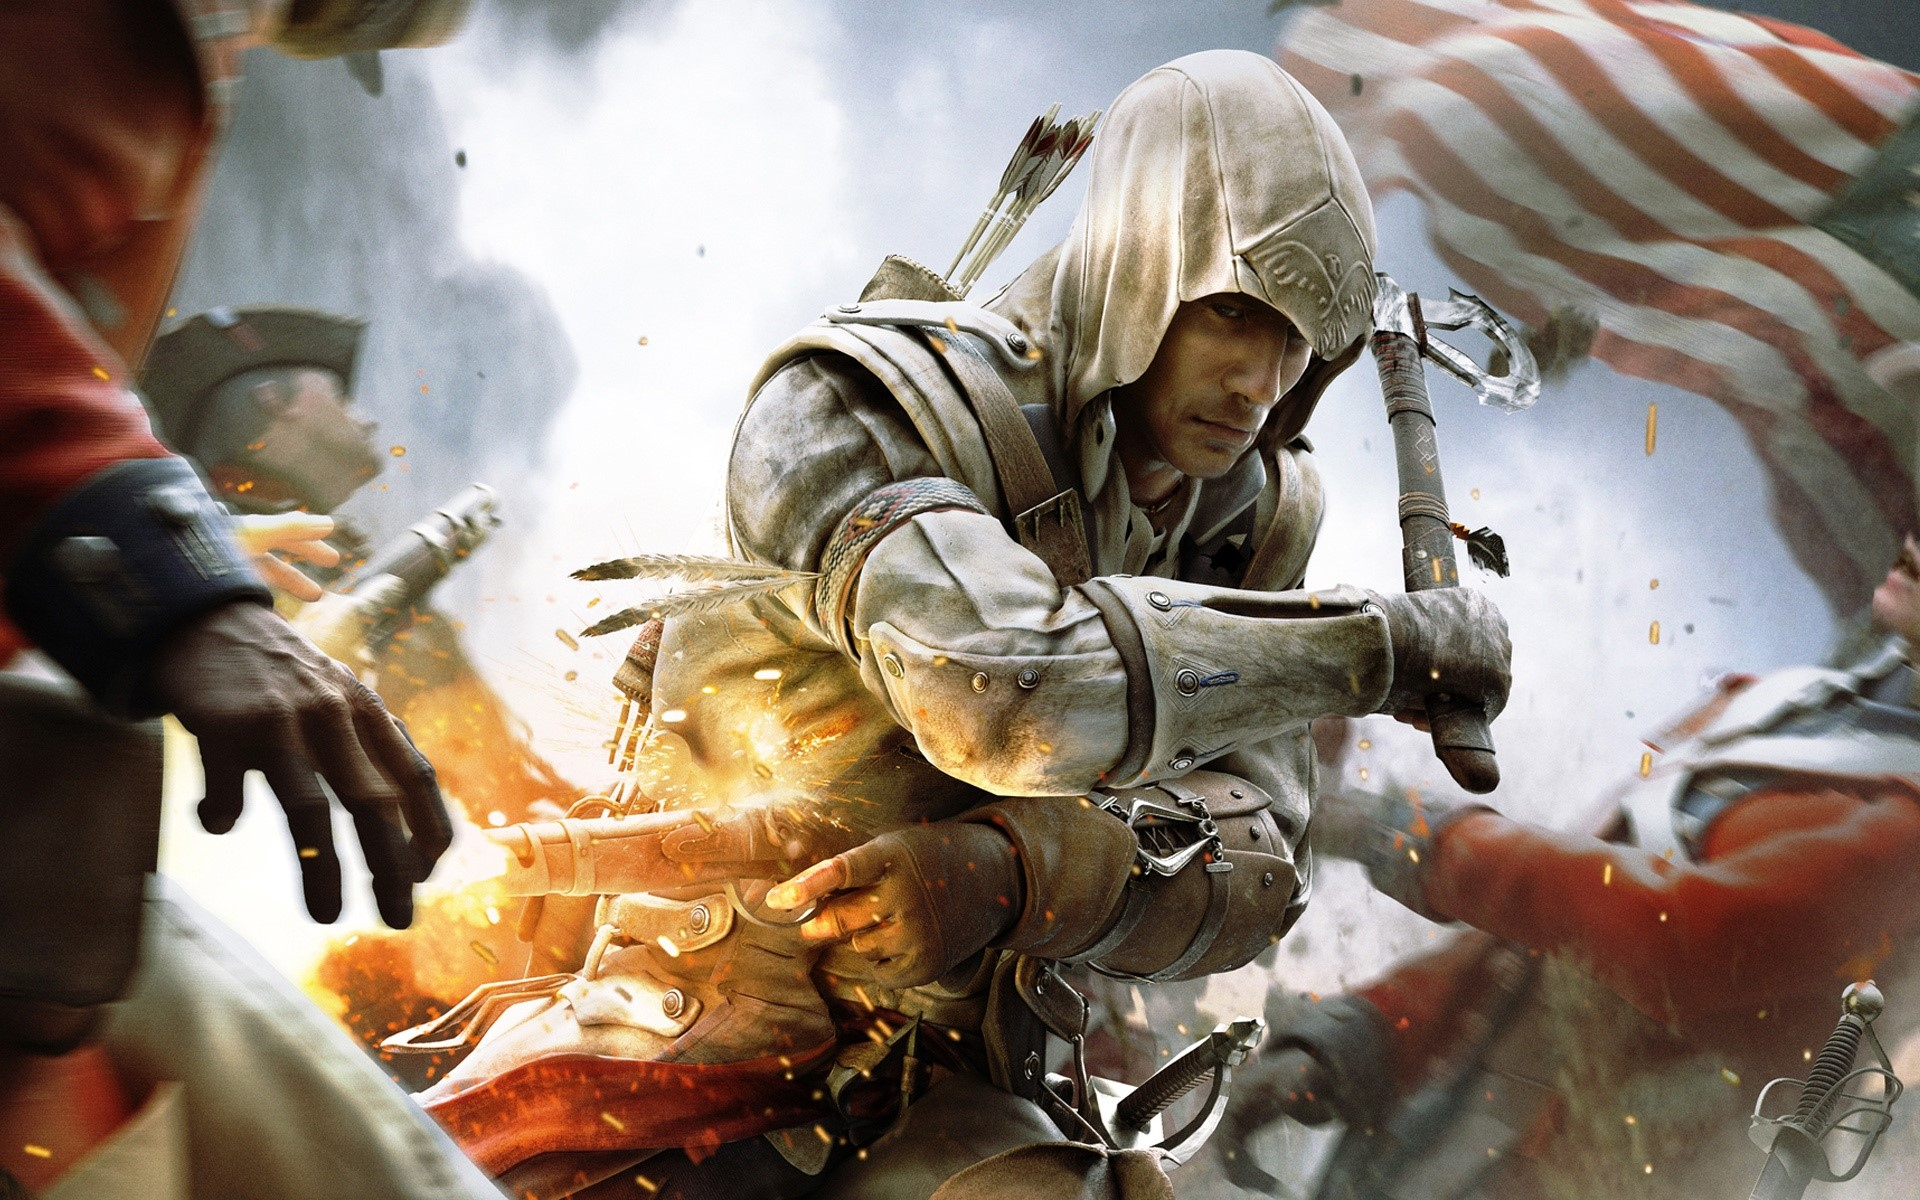 Fondo de pantalla de Assassins Creed 3 Imágenes